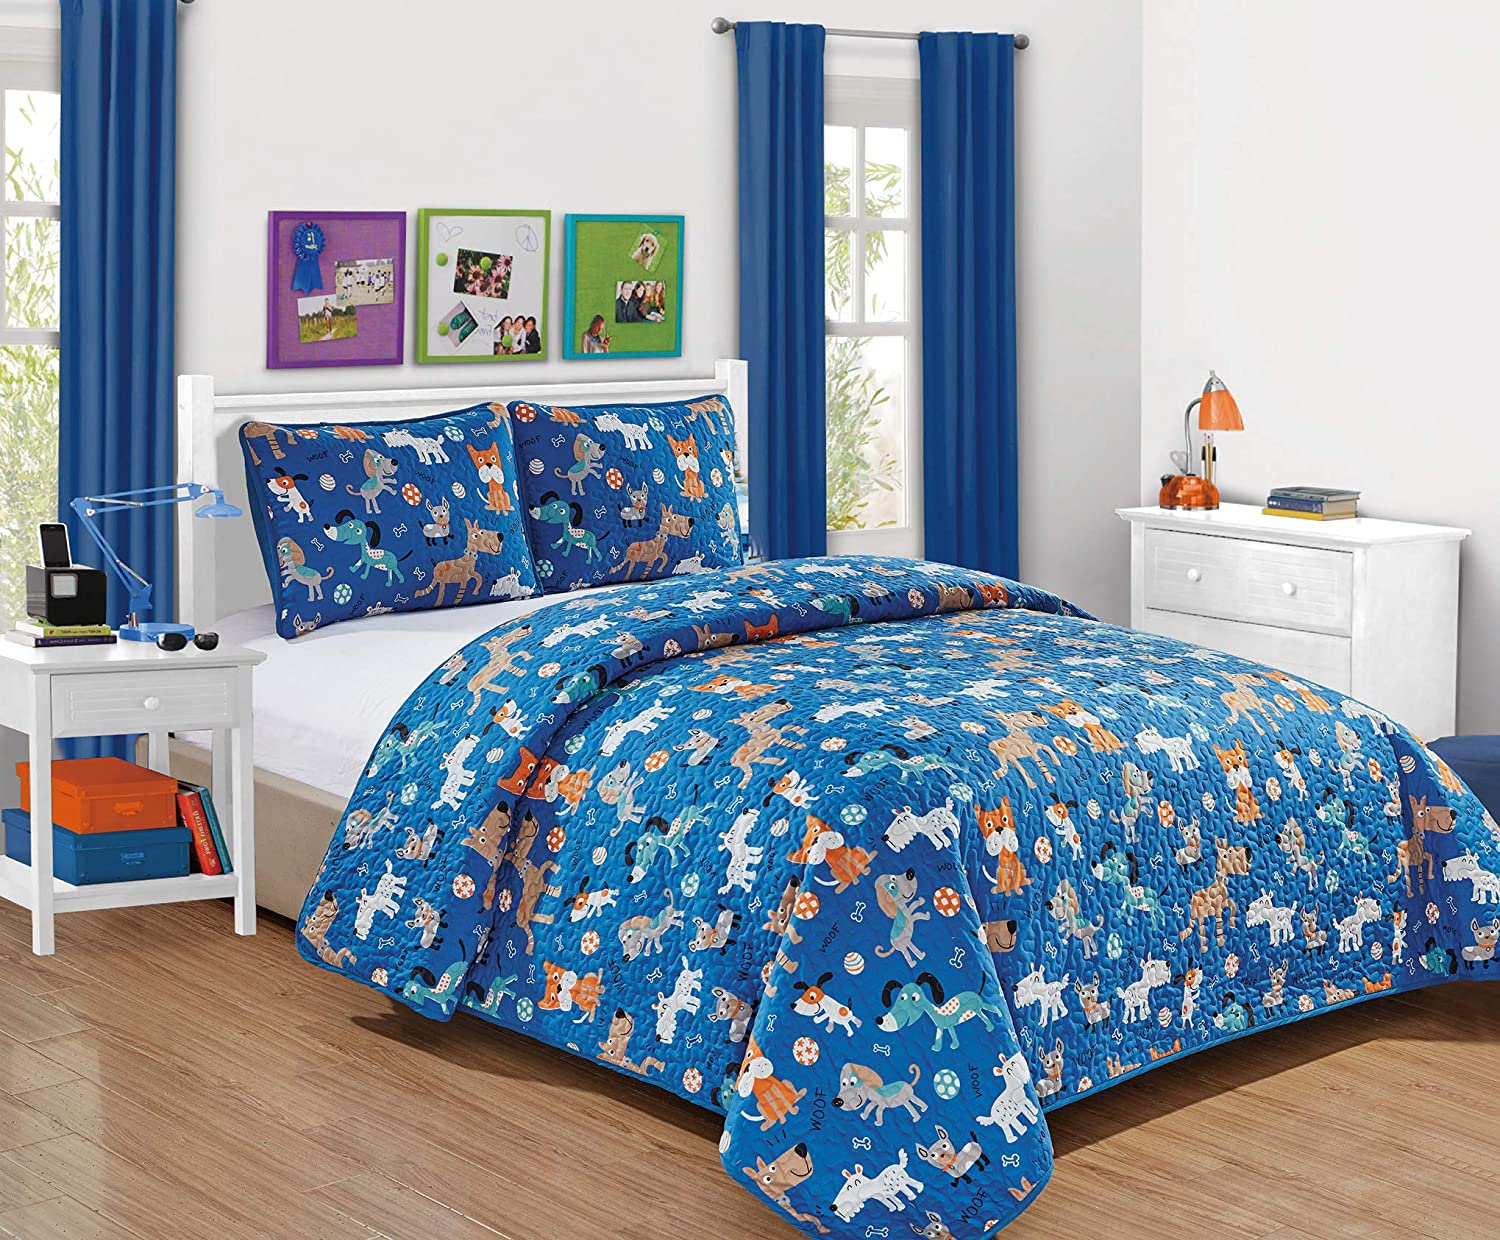 Better Home Style Blue Playing Puppy with Woof Woof Wagging Dogs Pups and Puppies Kids Toddler 3 Piece Coverlet Bedspread Quilt Set with Pillowcases (Blue Dog, Full/Queen)